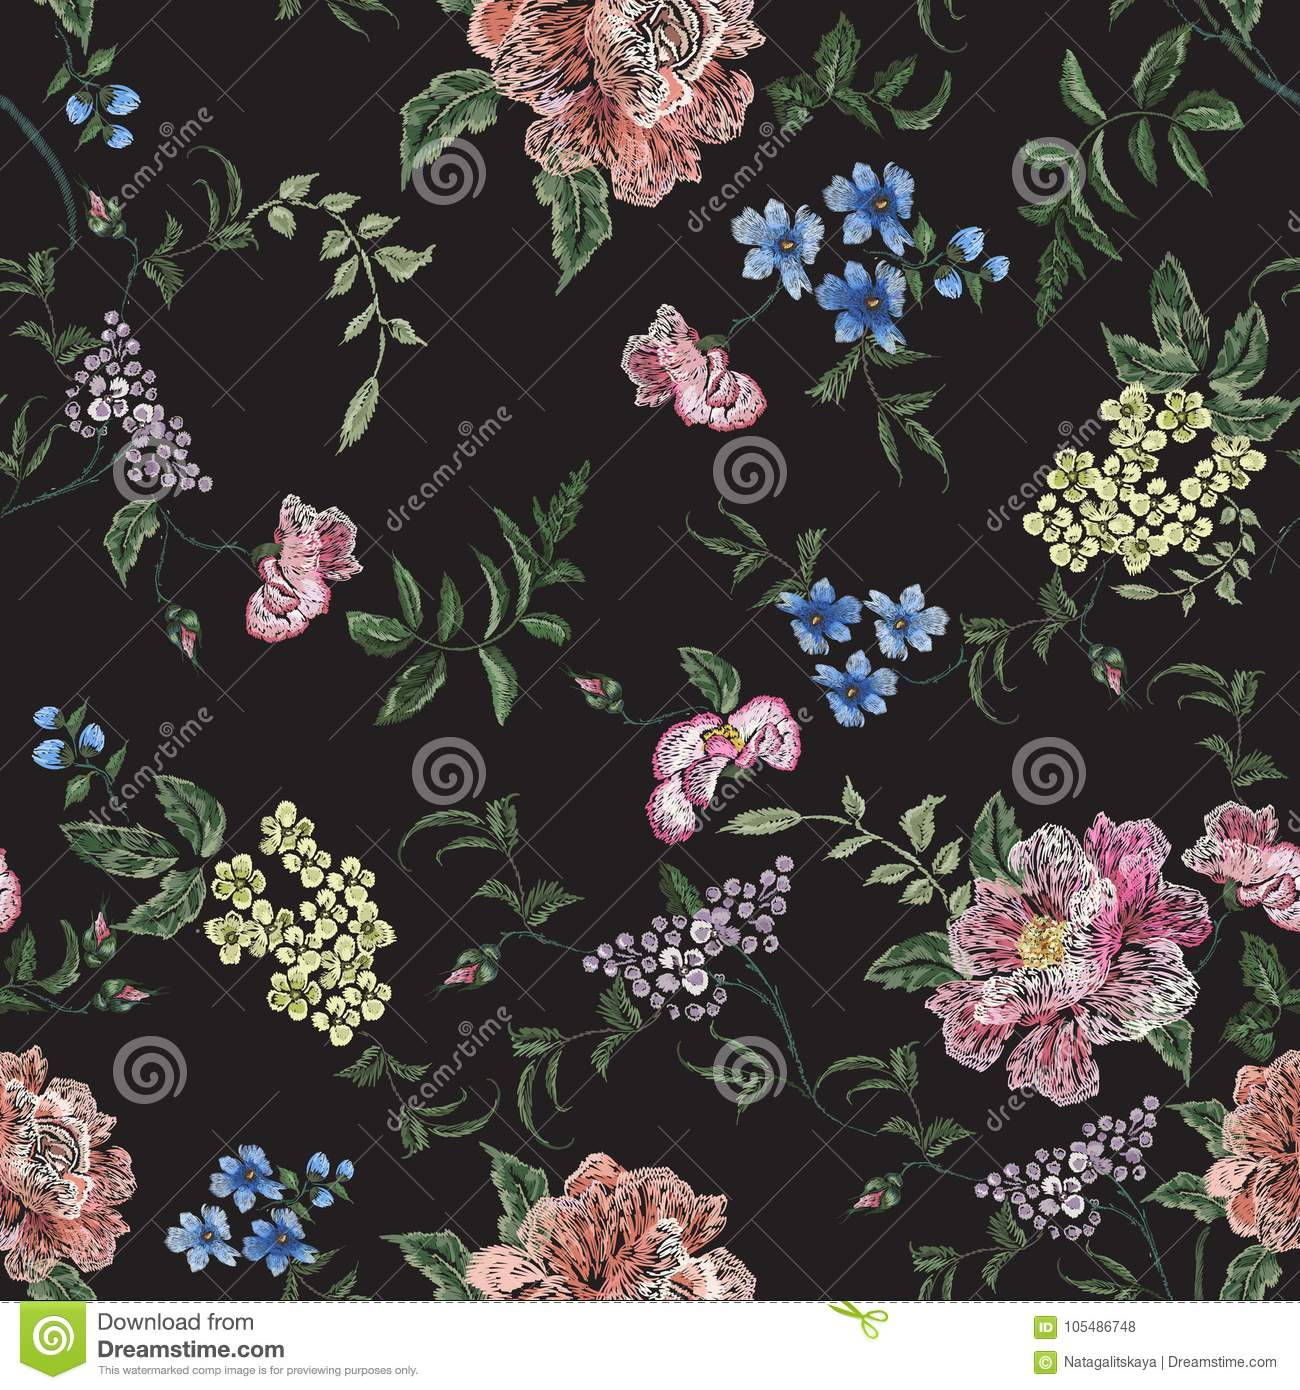 Embroidery floral seamless pattern with rose branch, violets.